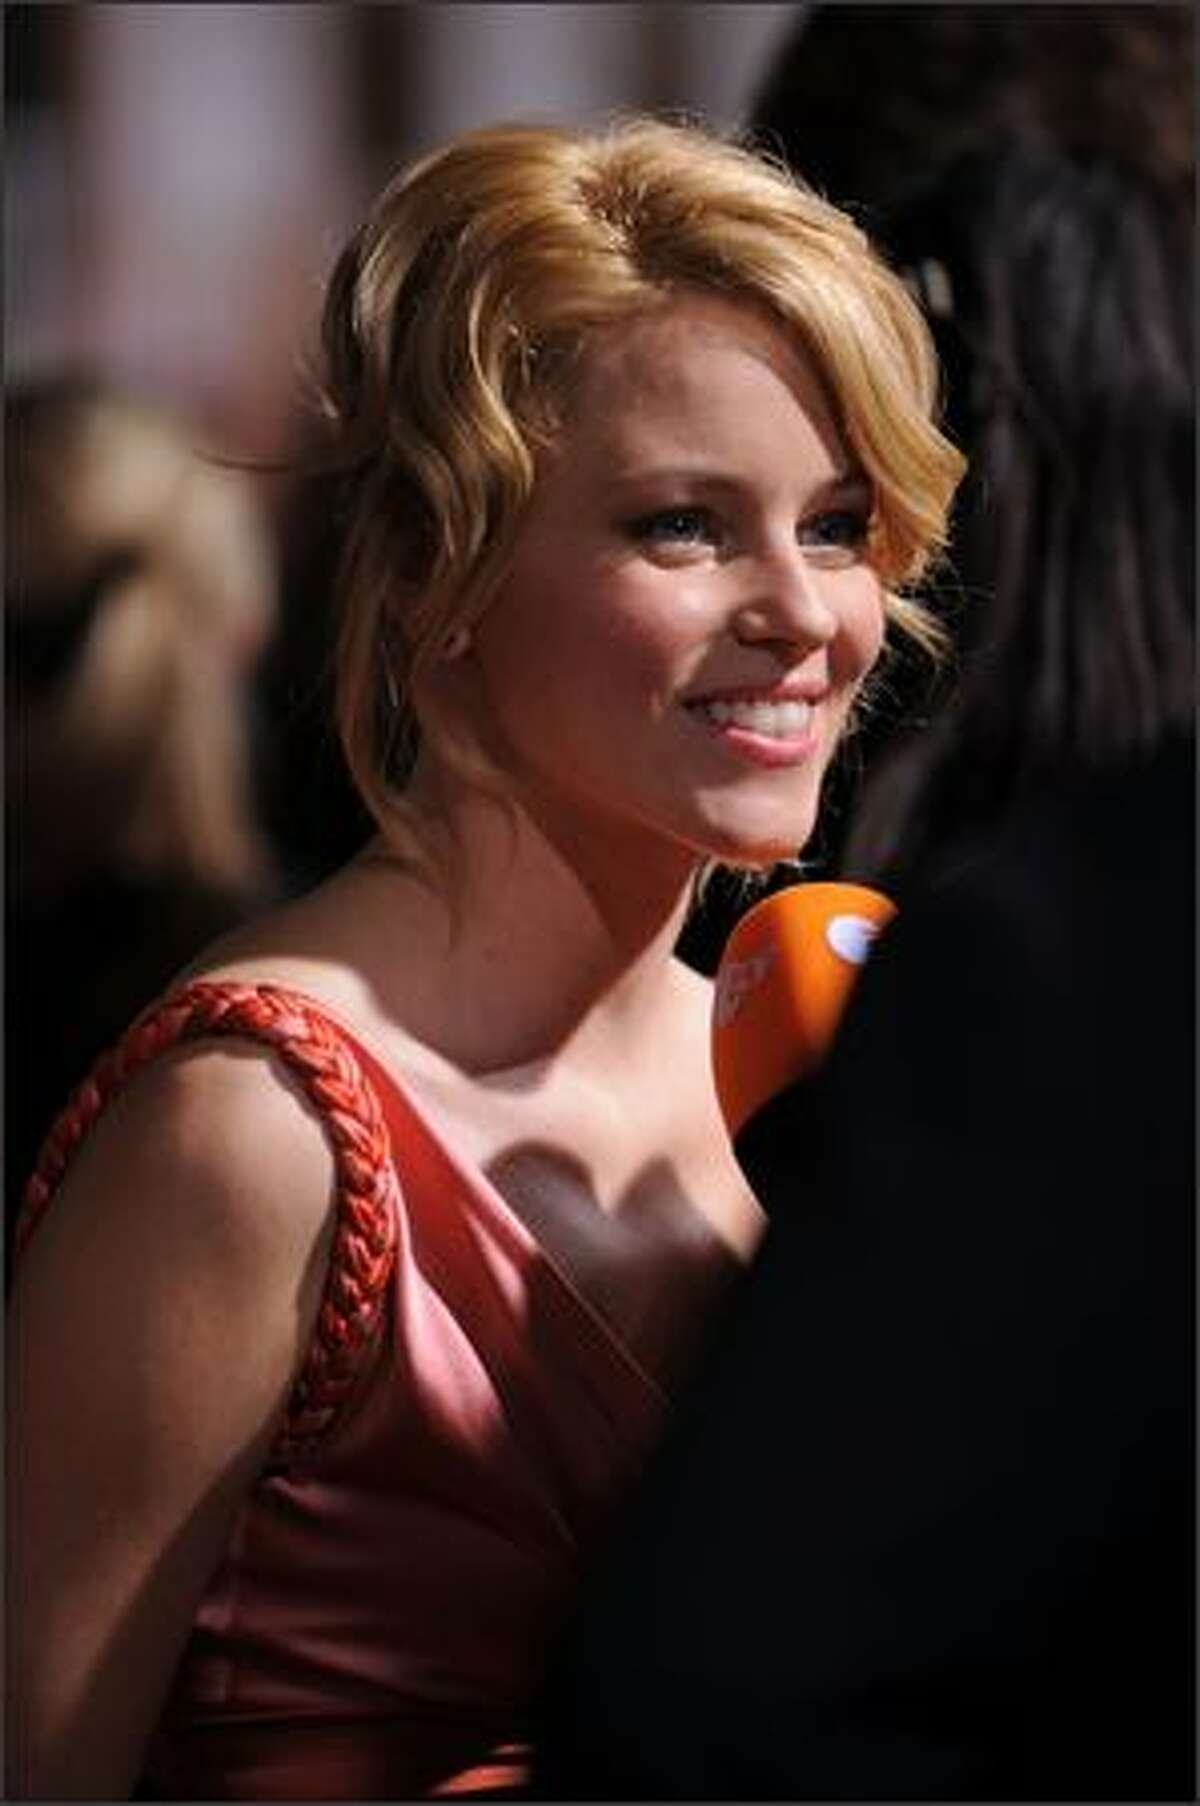 Actress Elizabeth Banks arrives at the New York premiere of